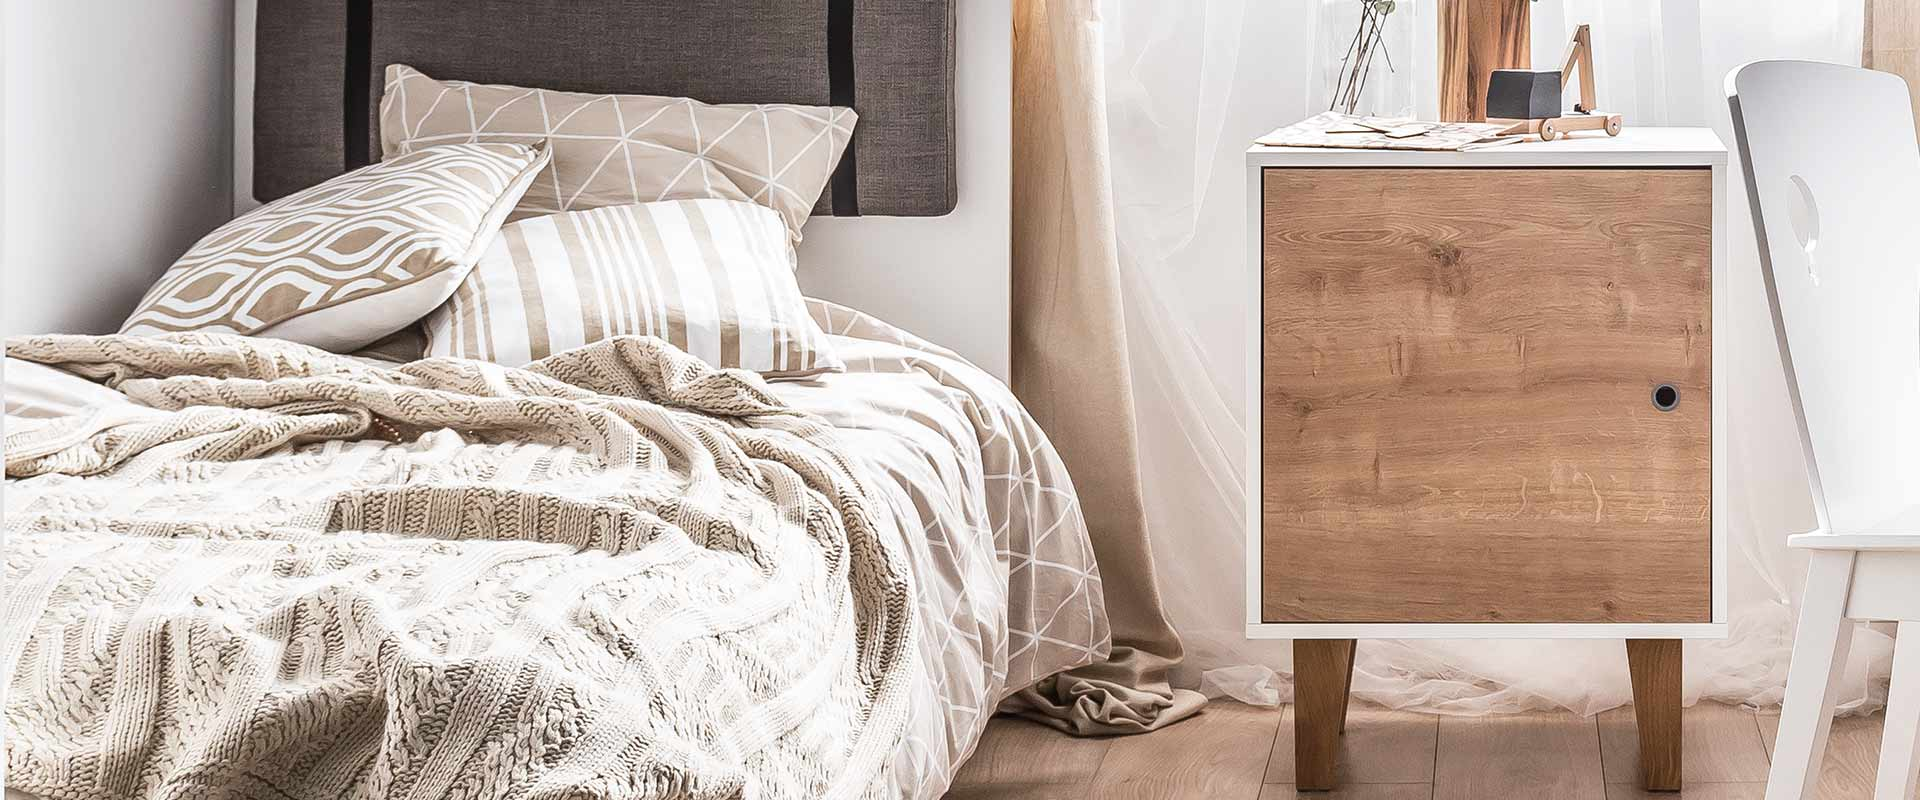 Our Pedestals Are Specially Selected To Complement The Wide Range Of Kids  Bedroom Furniture From Top Brands Like Vox, Flexa And Kukuu.